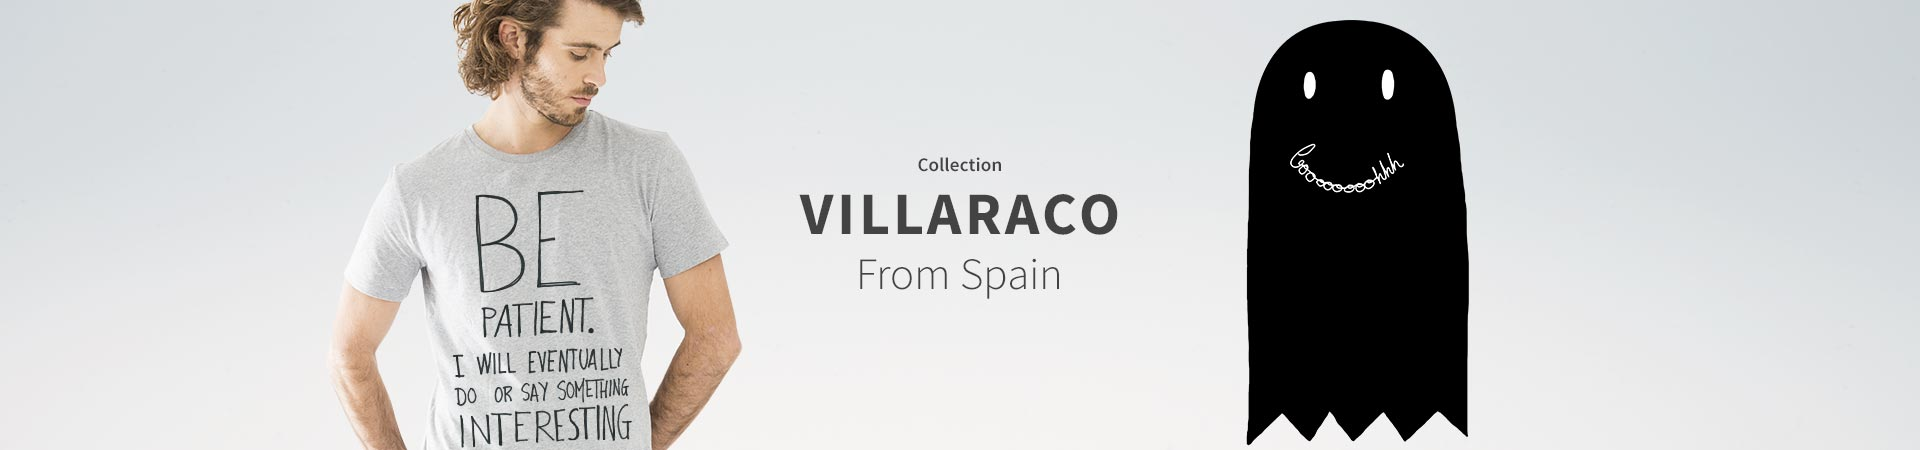 Collection Villaraco